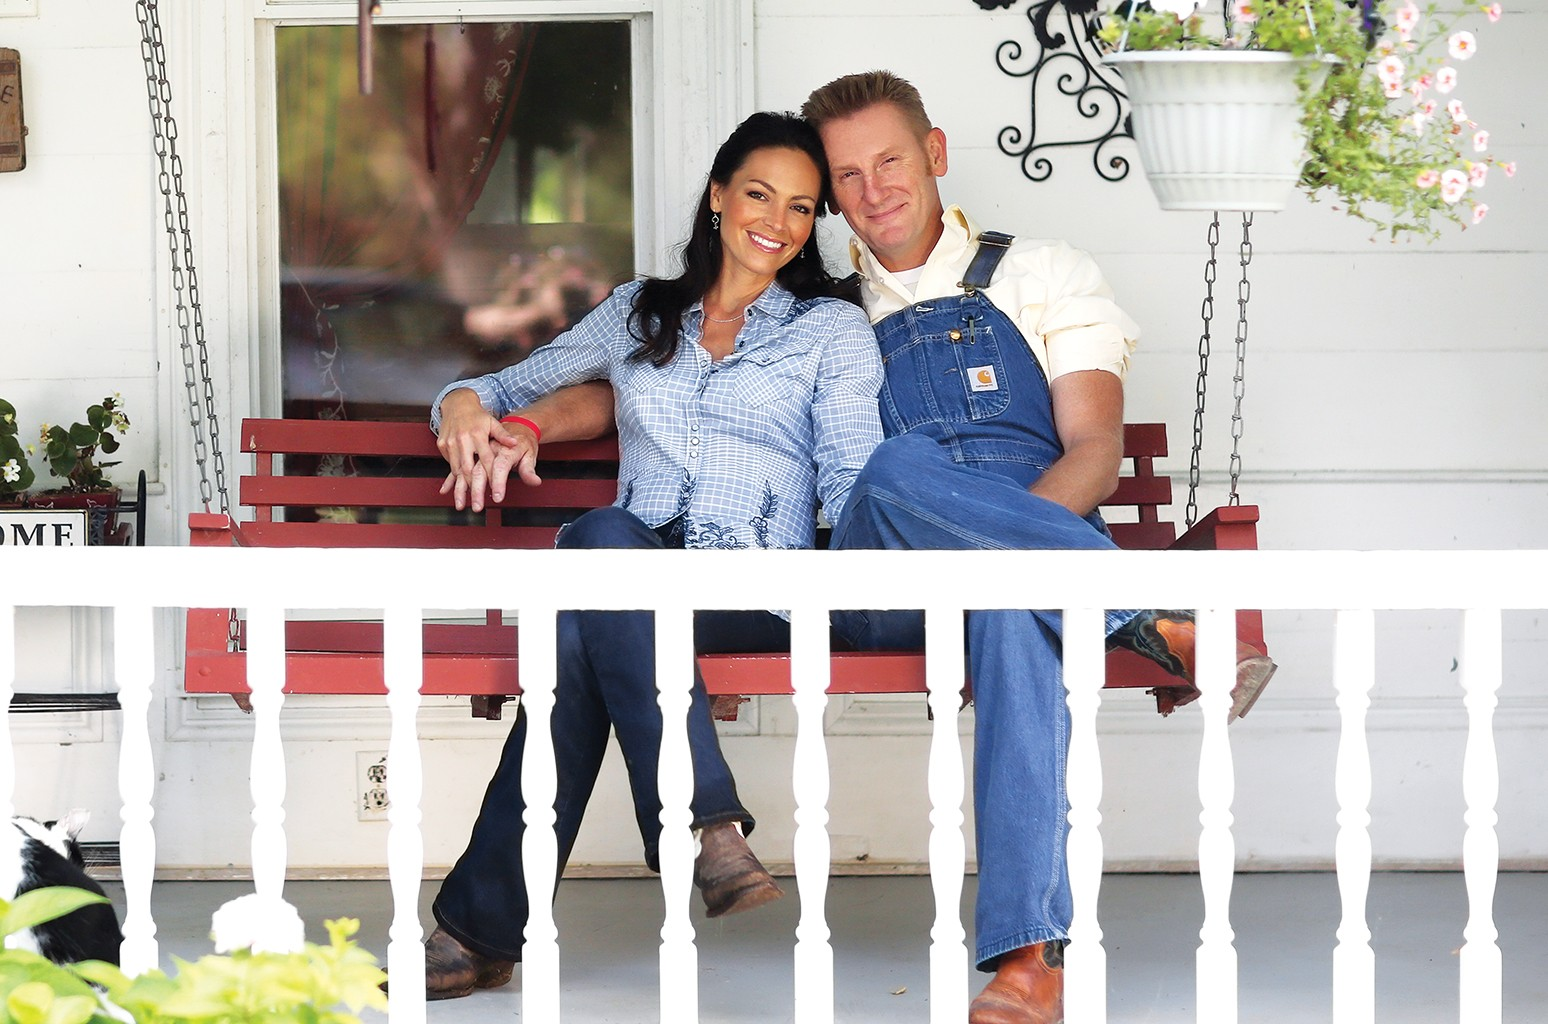 Joey (left) and Rory Feek in Tennessee in 2013.